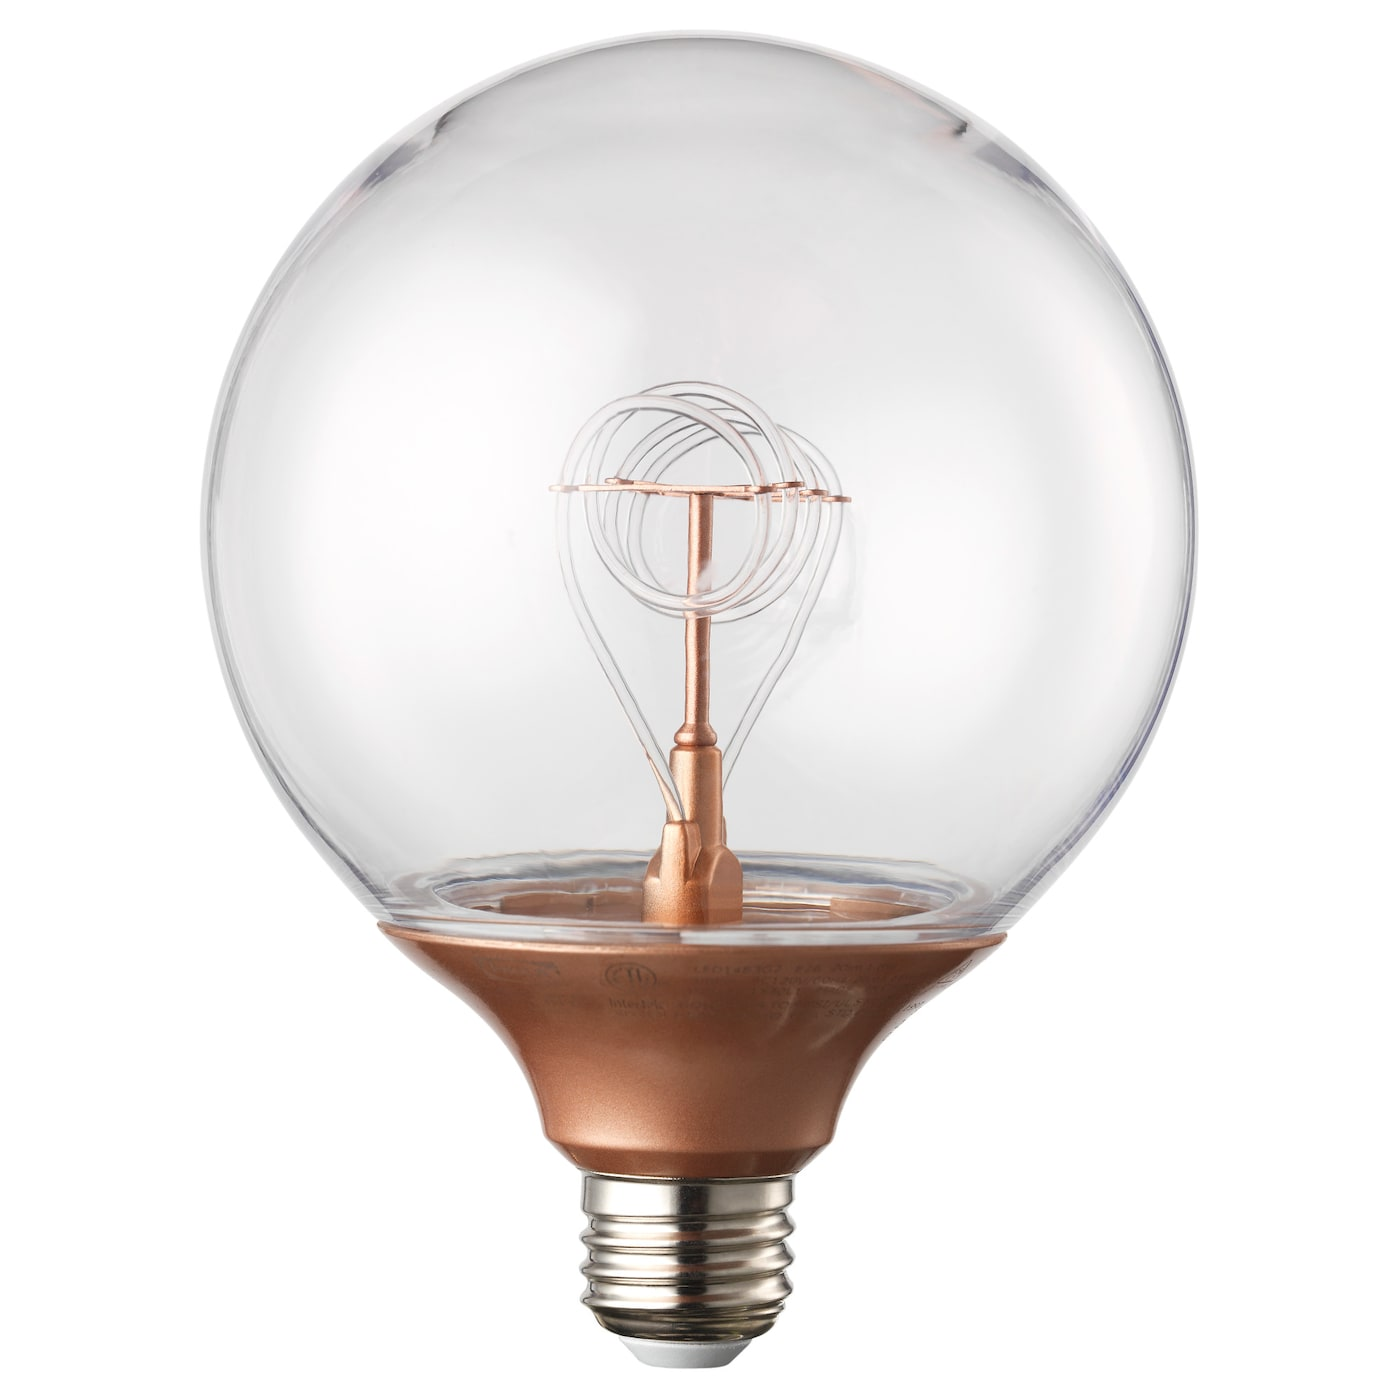 nittio-led-bulb-e27-20-lumen-globe-copper-colour__0417790_pe575641_s5 Wunderbar Led Mr11 Gu4 Warmweiss Dekorationen